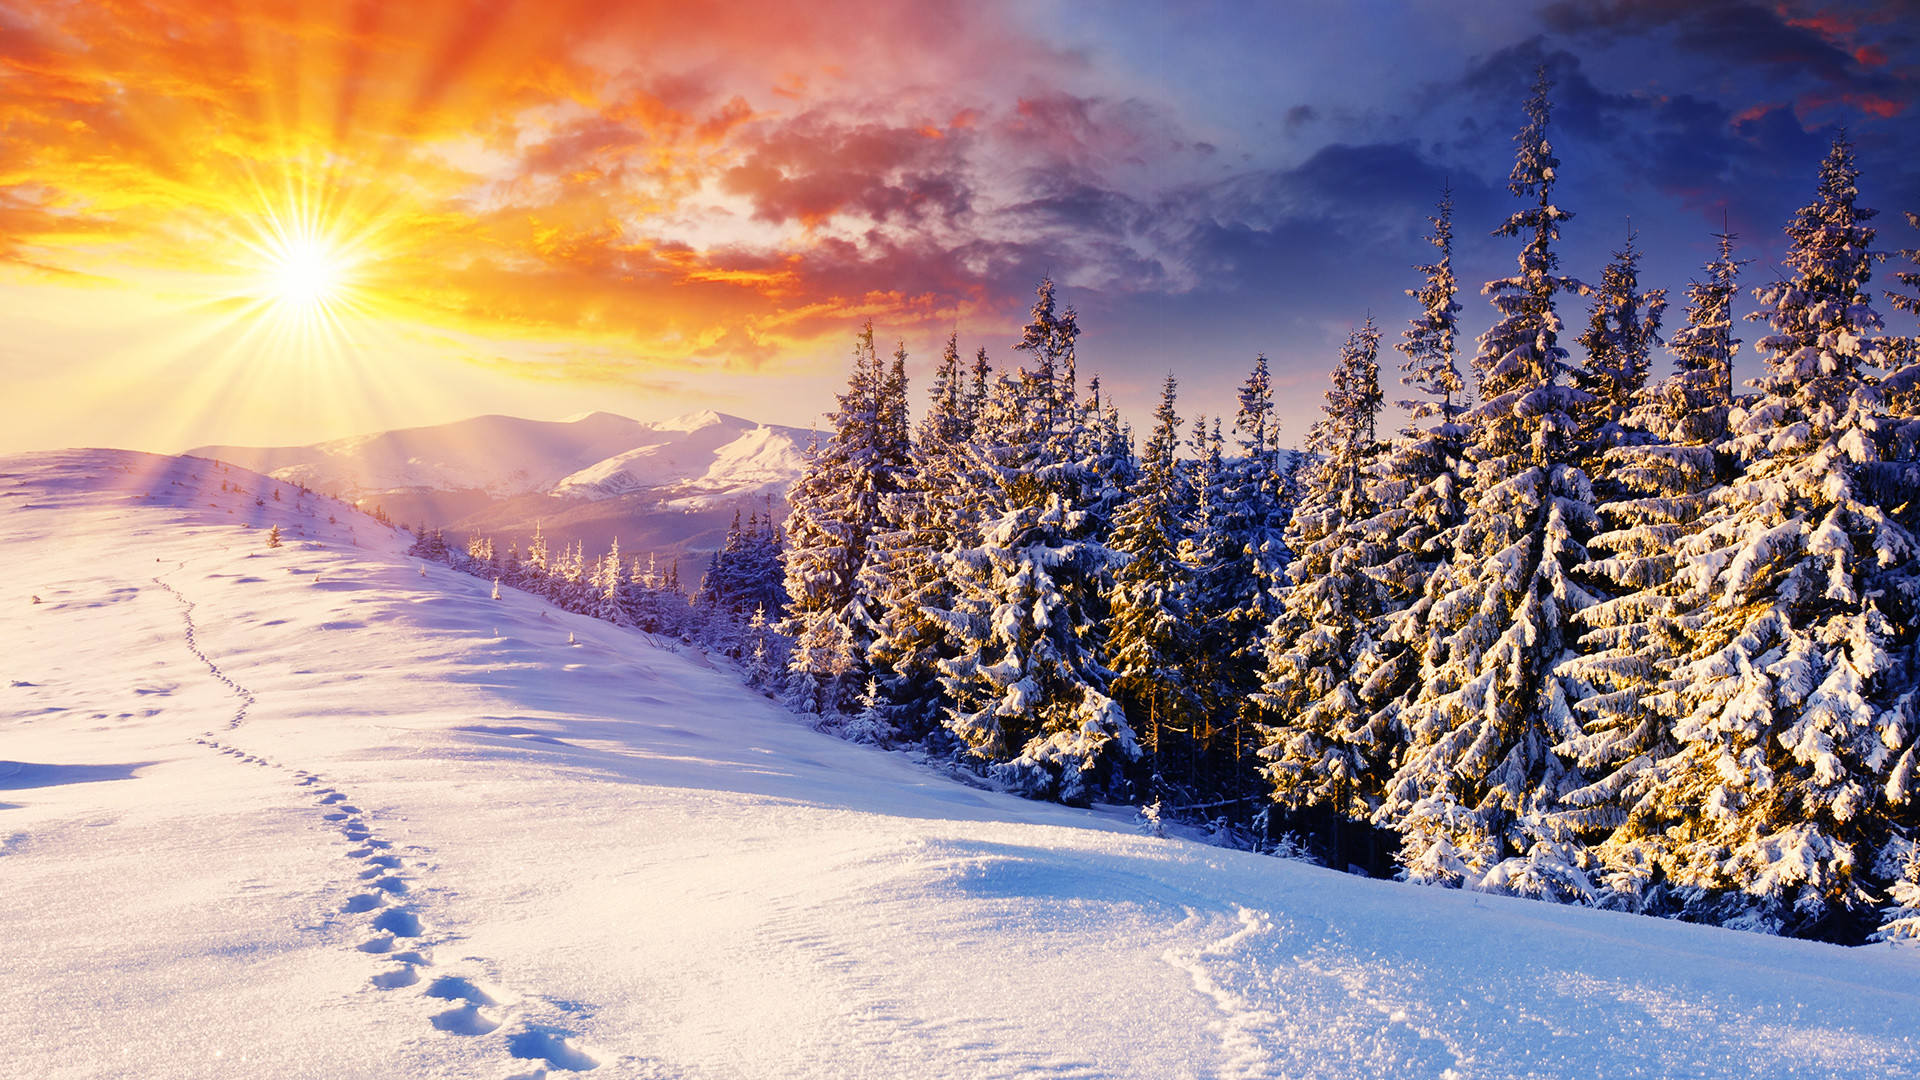 Winter Wallpaper For Desktop Background (56+ Images